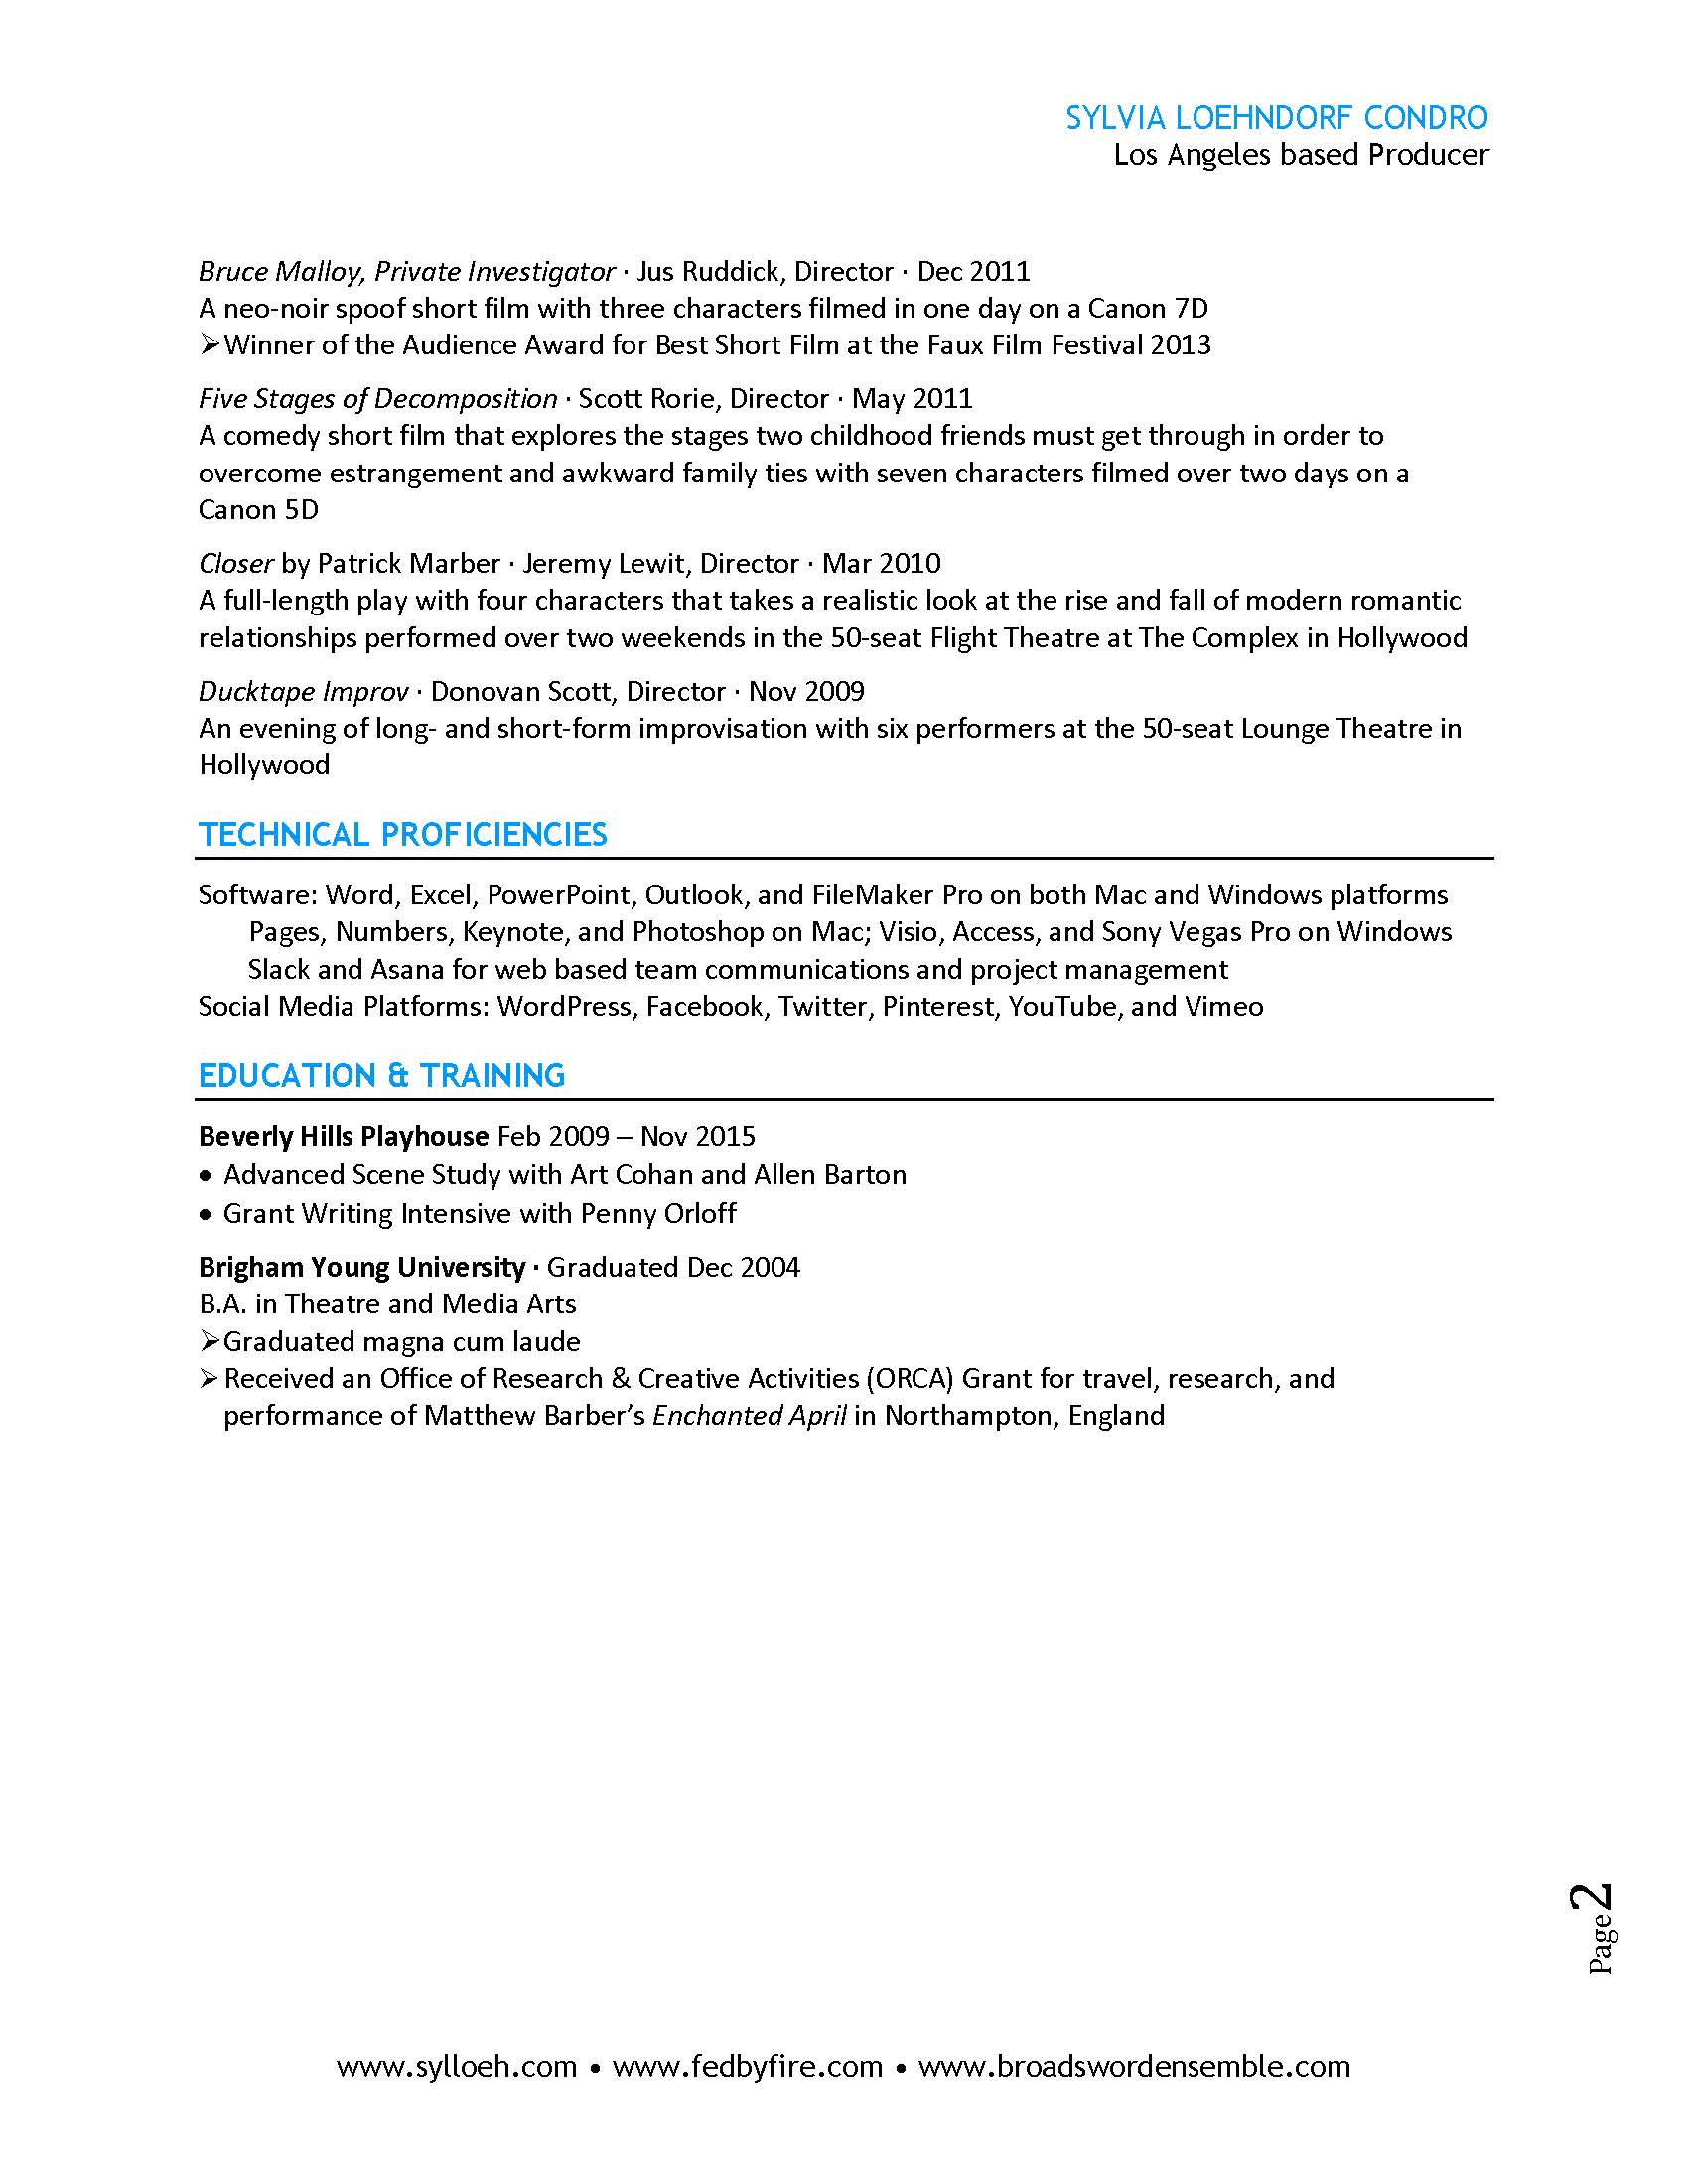 dissertations & theses - *u.s. history - libguides at northwestern, Neooffice Presentation Template, Presentation templates